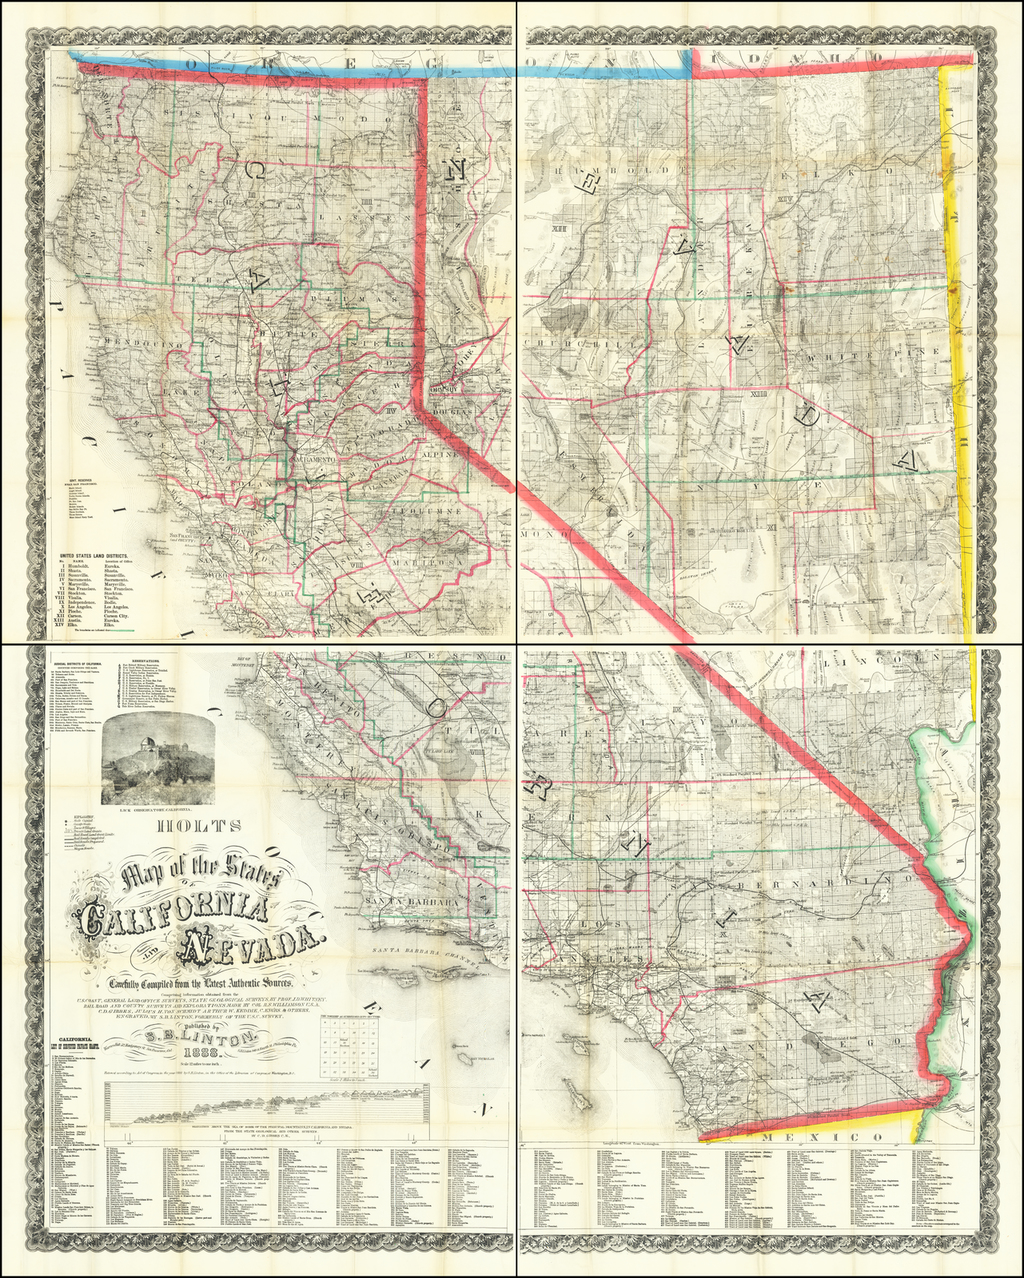 Map of the States of California and Nevada Carefully Compiled from the Latest Authentic Sources. By Warren Holt  &  S.B. Linton